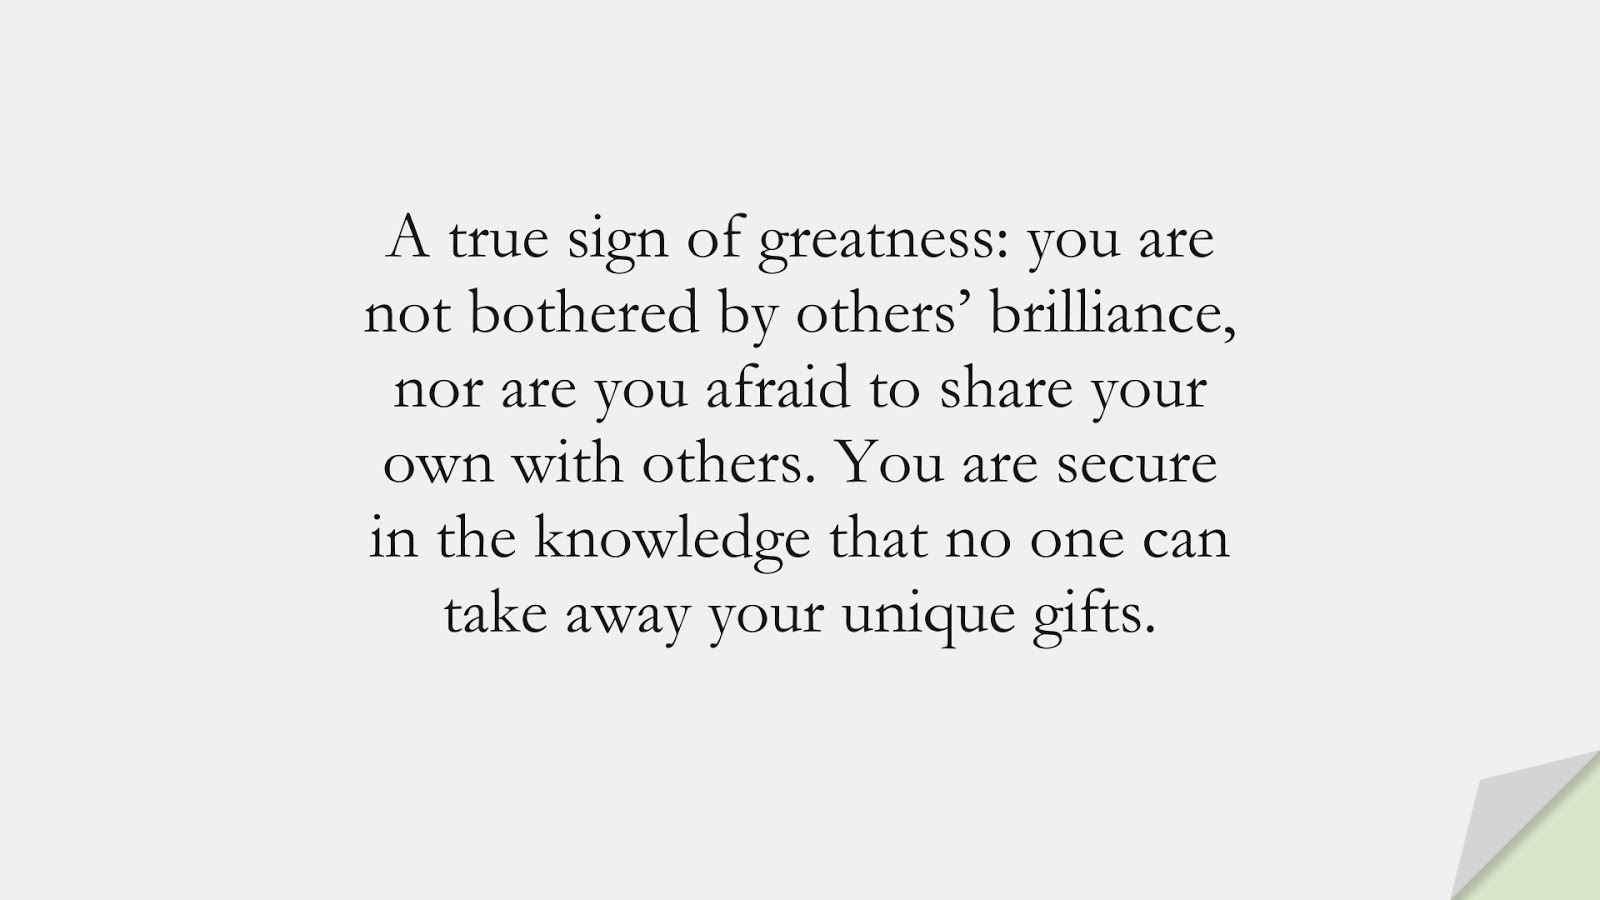 A true sign of greatness: you are not bothered by others' brilliance, nor are you afraid to share your own with others. You are secure in the knowledge that no one can take away your unique gifts.FALSE